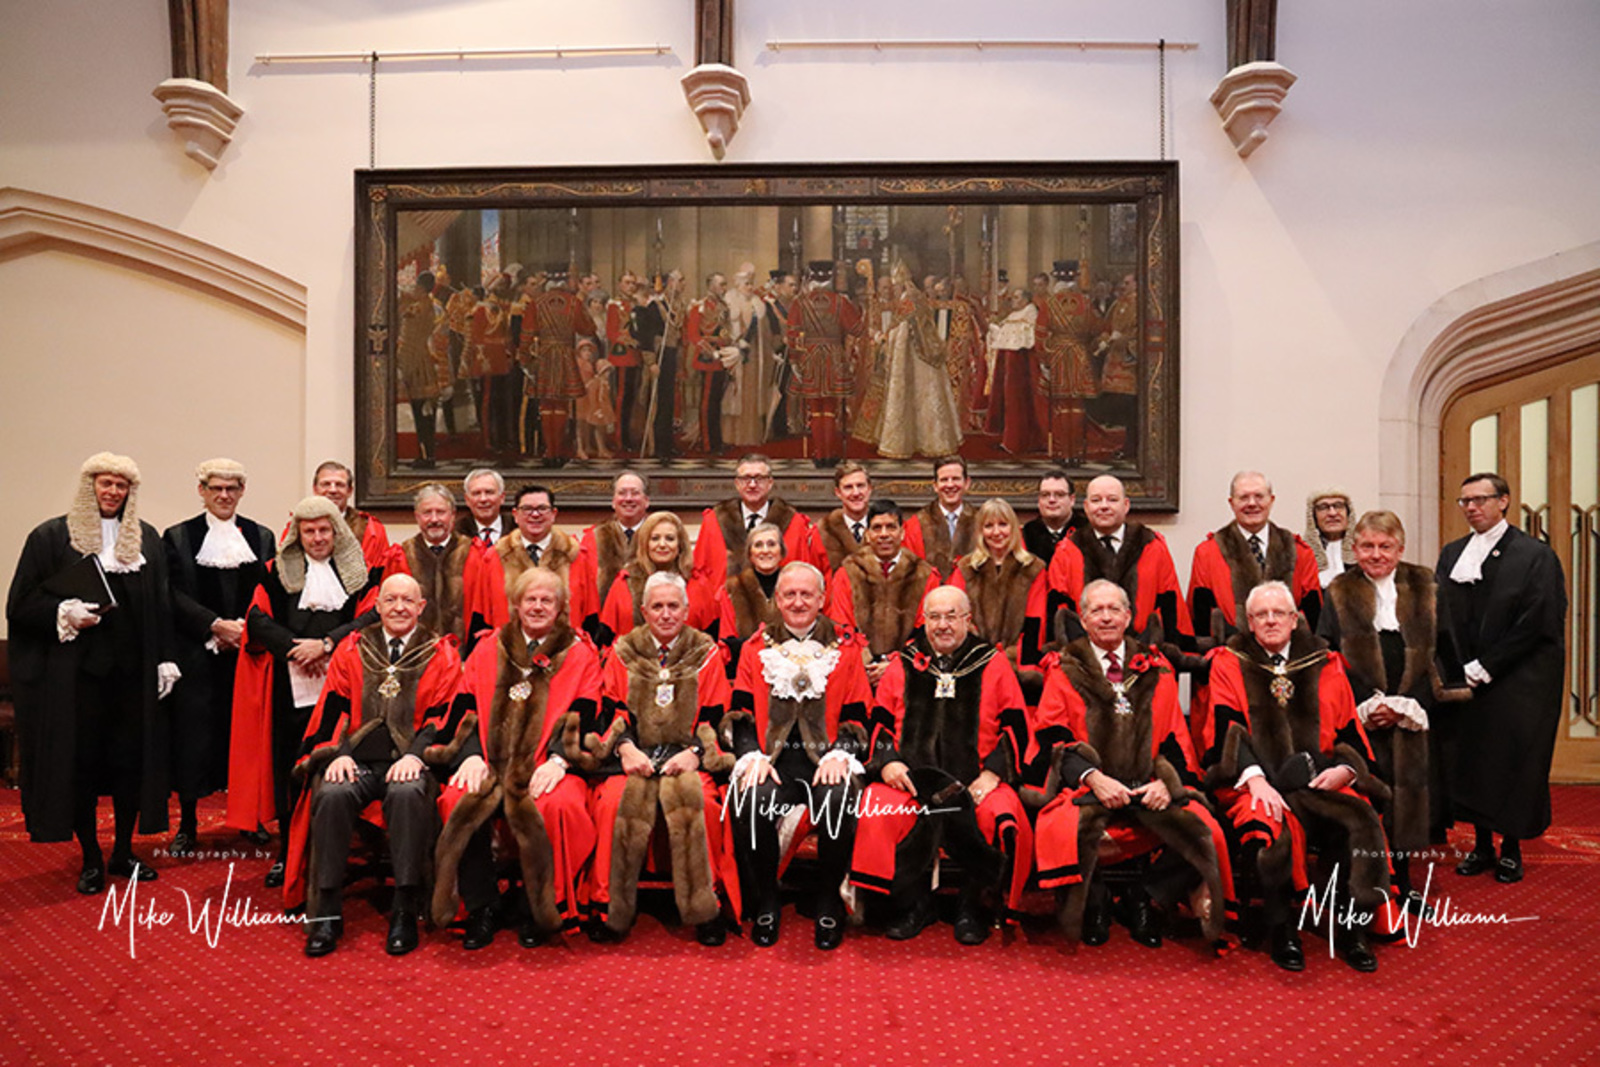 The Court of Aldermen is summoned and presided over by the Lord Mayor and consists of the 25 Aldermen, one for each ward of the City, and The Recorder of London